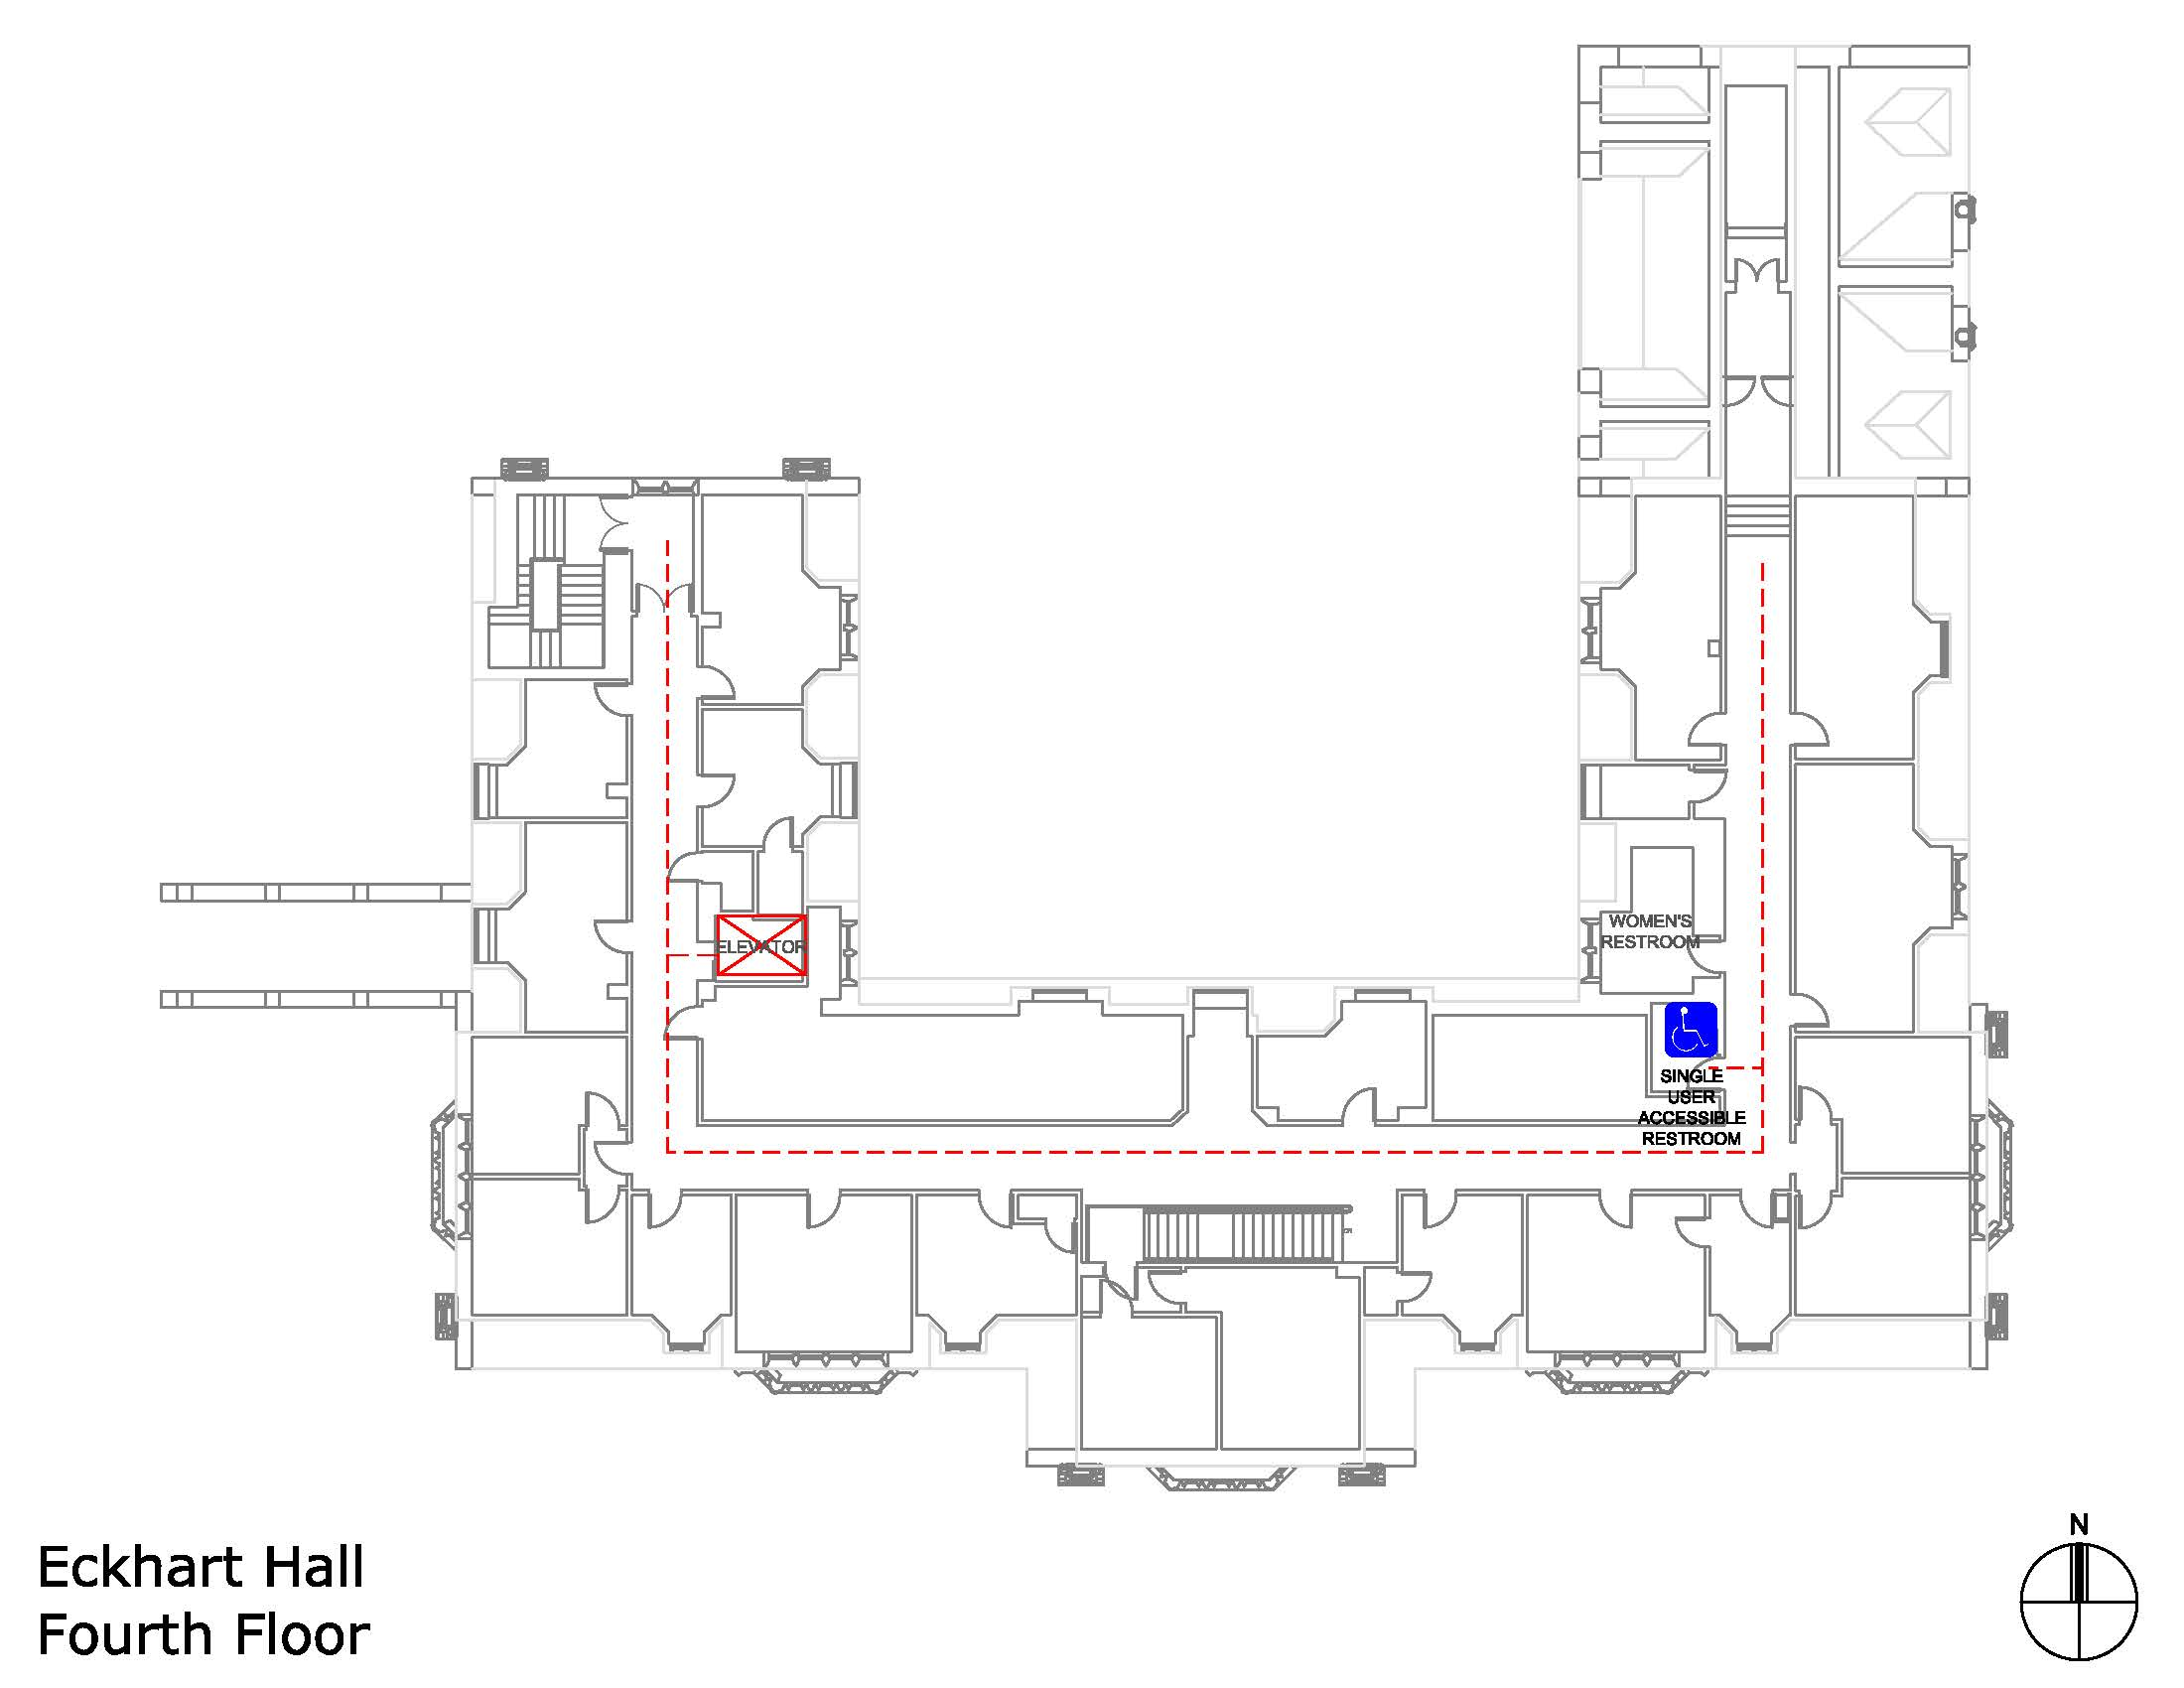 Eckhart Hall fourth floor accessible areas